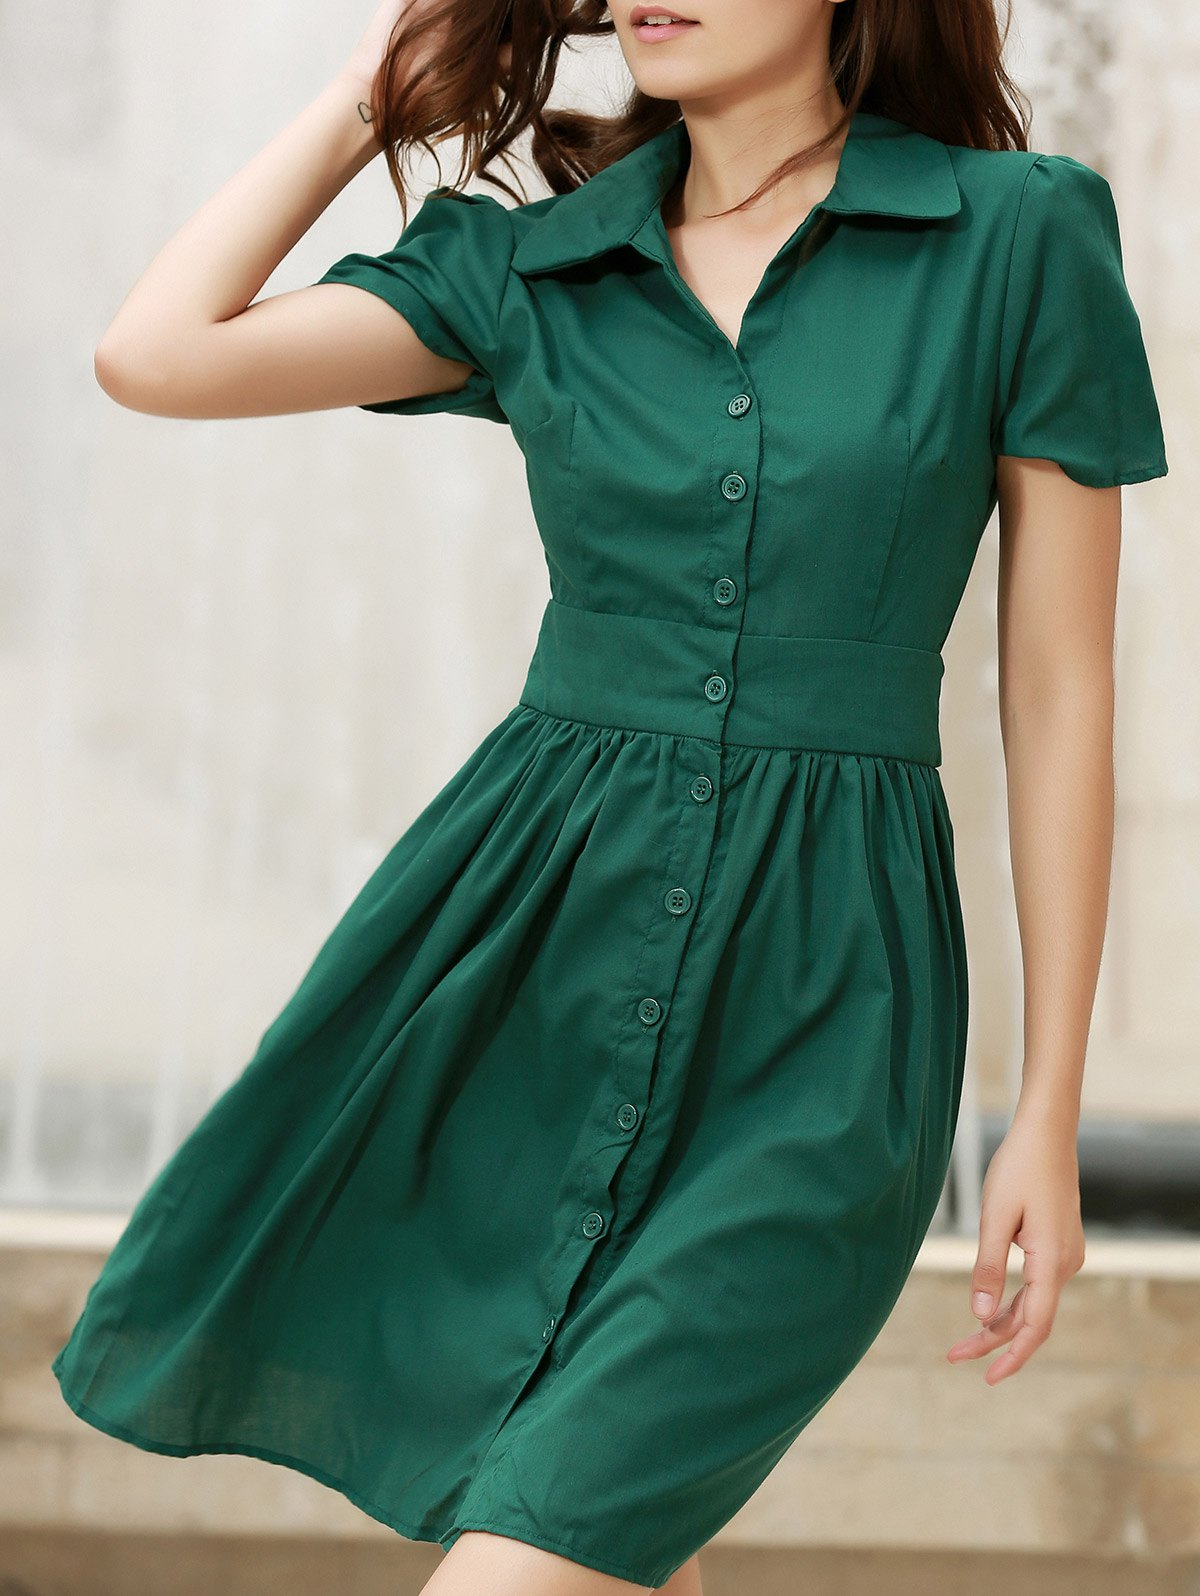 Vintage Turn-Down Collar Short Sleeve Lace-Up Single-Breasted Women's Dress - GREEN L